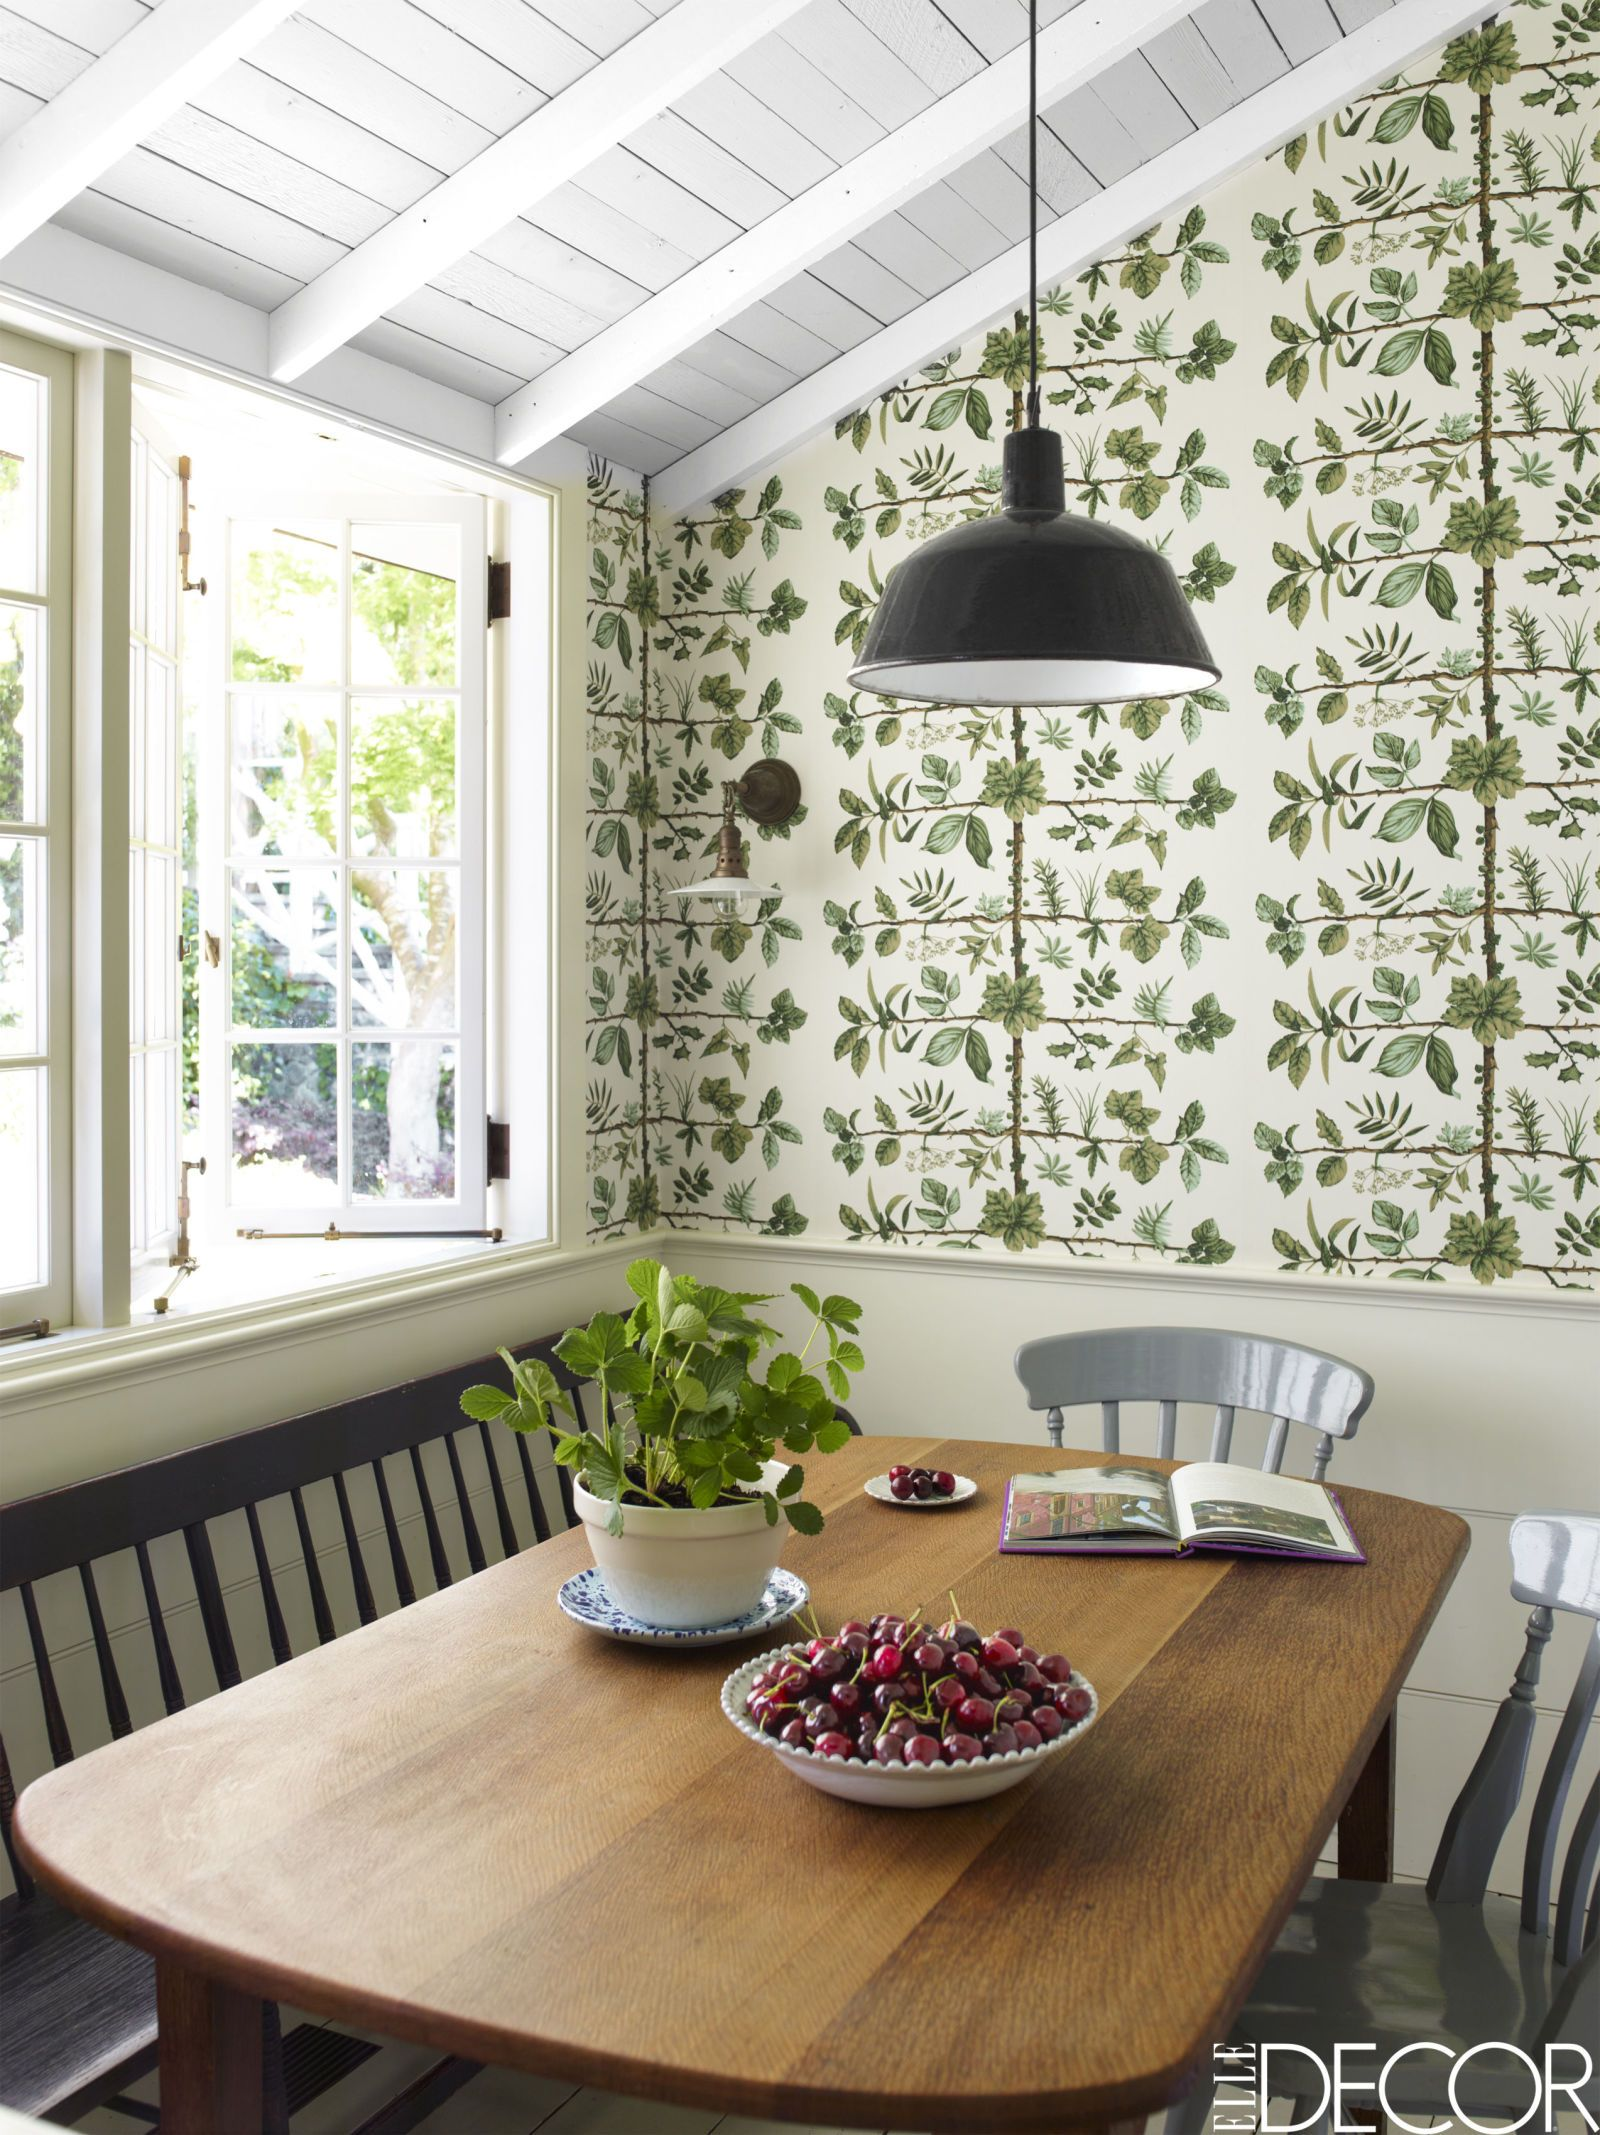 Einfache esszimmerbeleuchtung house tour an abandoned summer camp becomes an eclectic family home